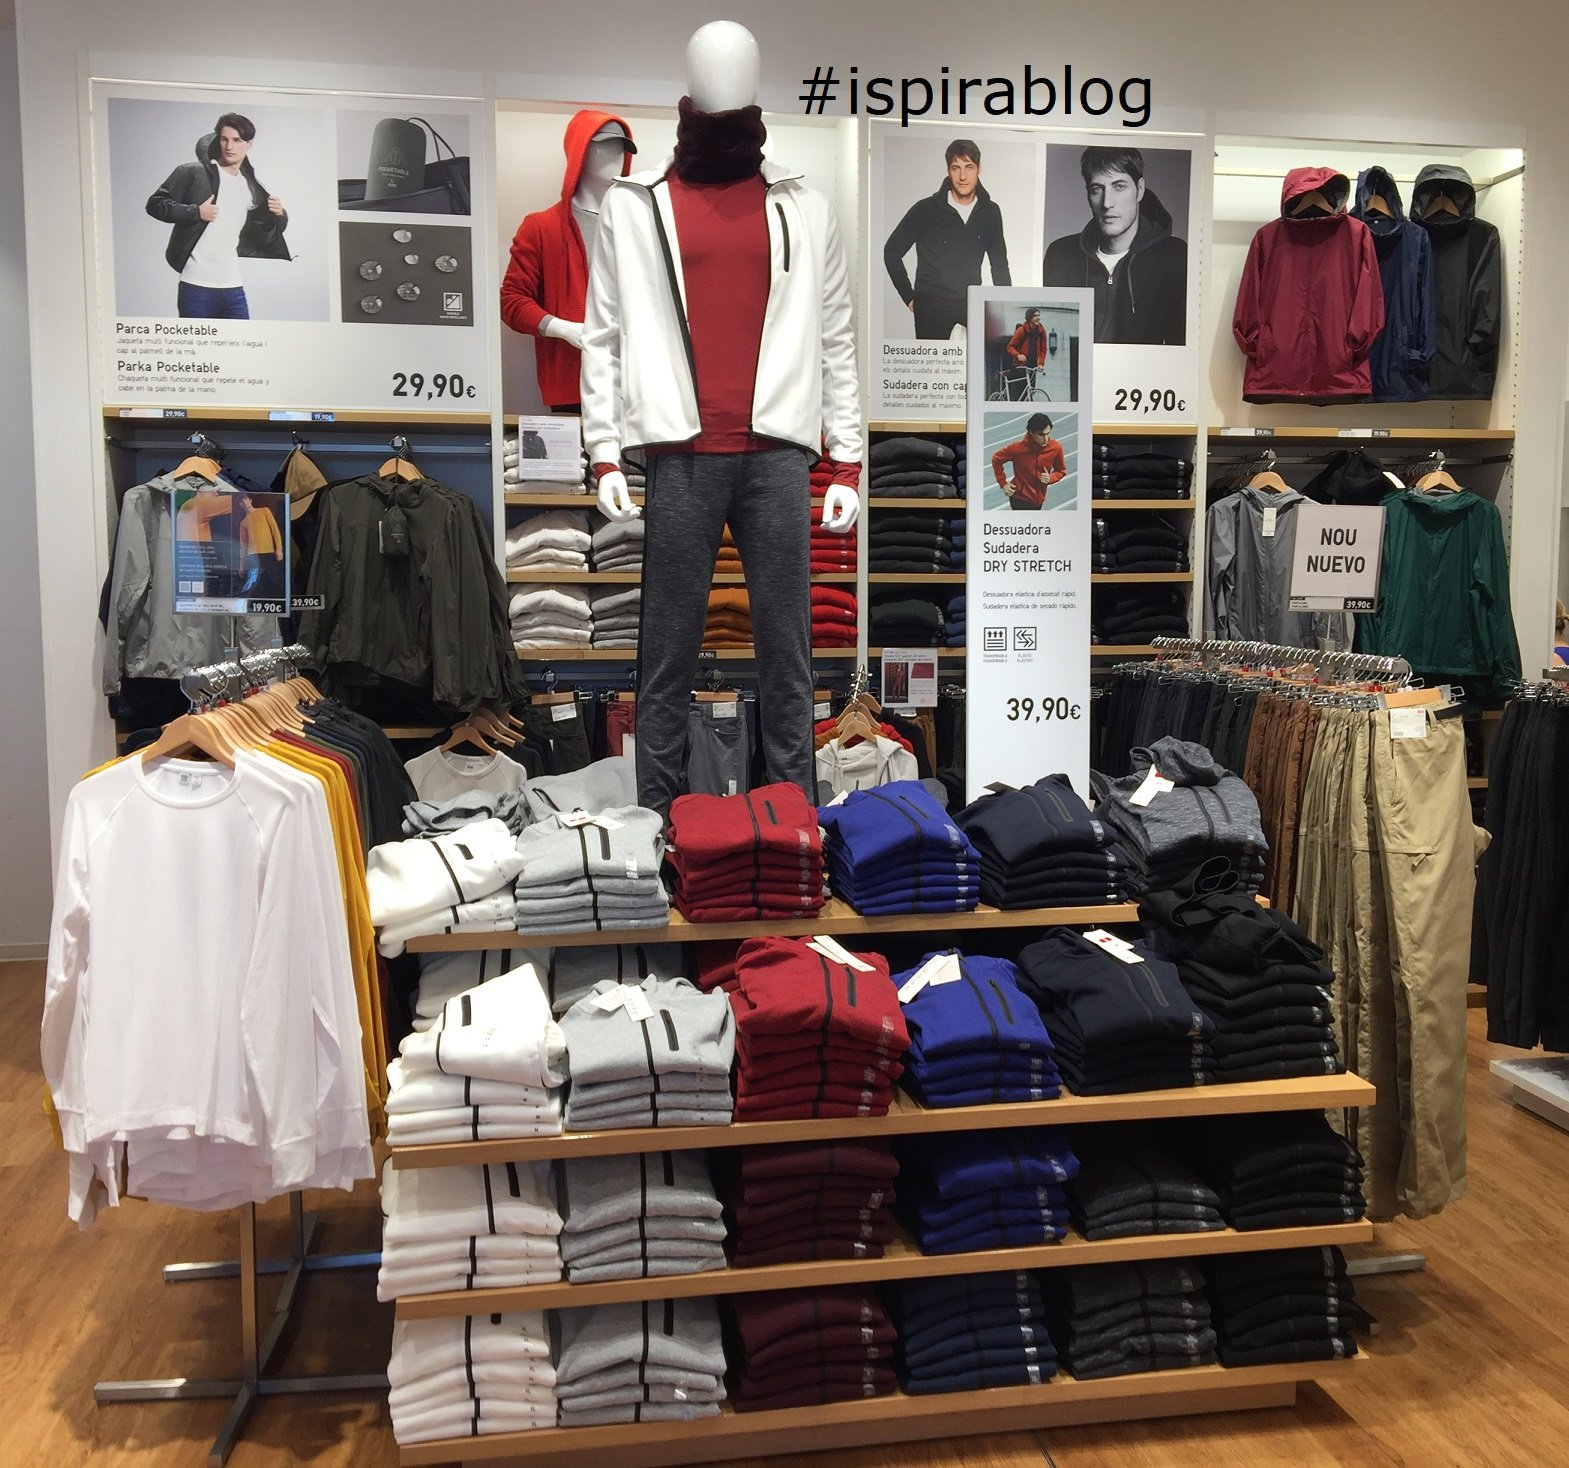 e66fabc8 ... Uniqlo - Barcelona - Autumn 2018 - Menswear Collection - breathable  fabric sweatshirts, long sleeve t-shirts and cotton trousers 2018-10-10 ...